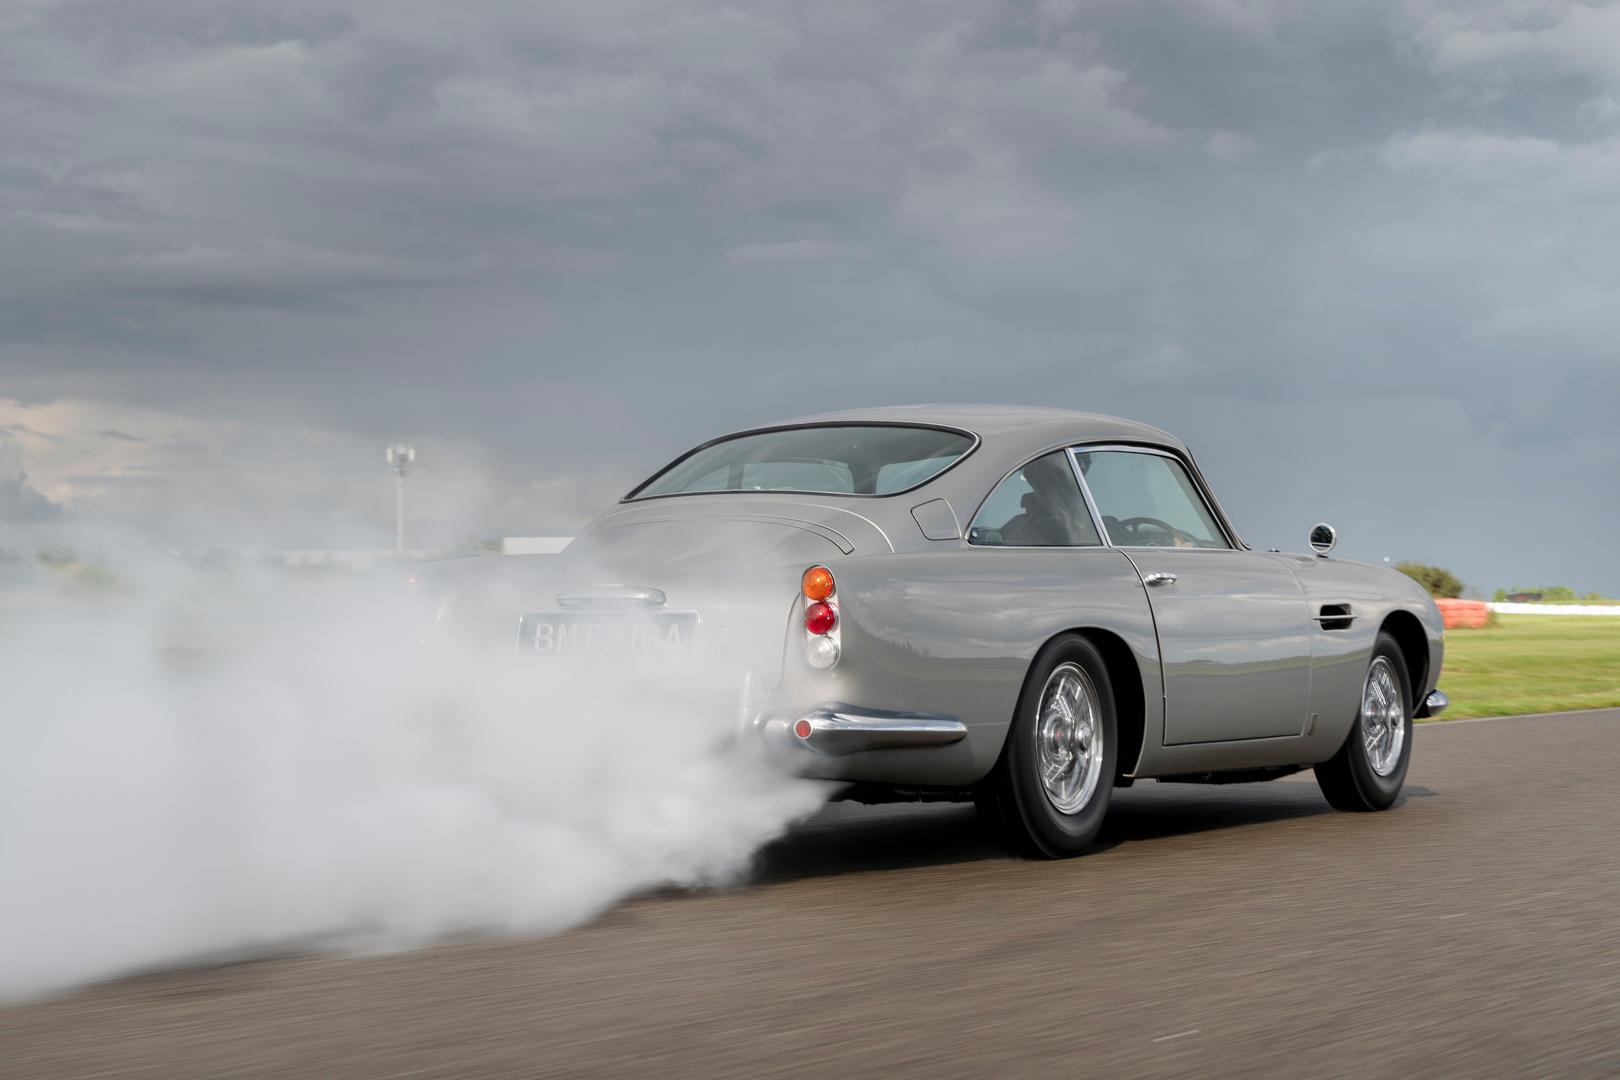 Aston Martin DB5 Burnout